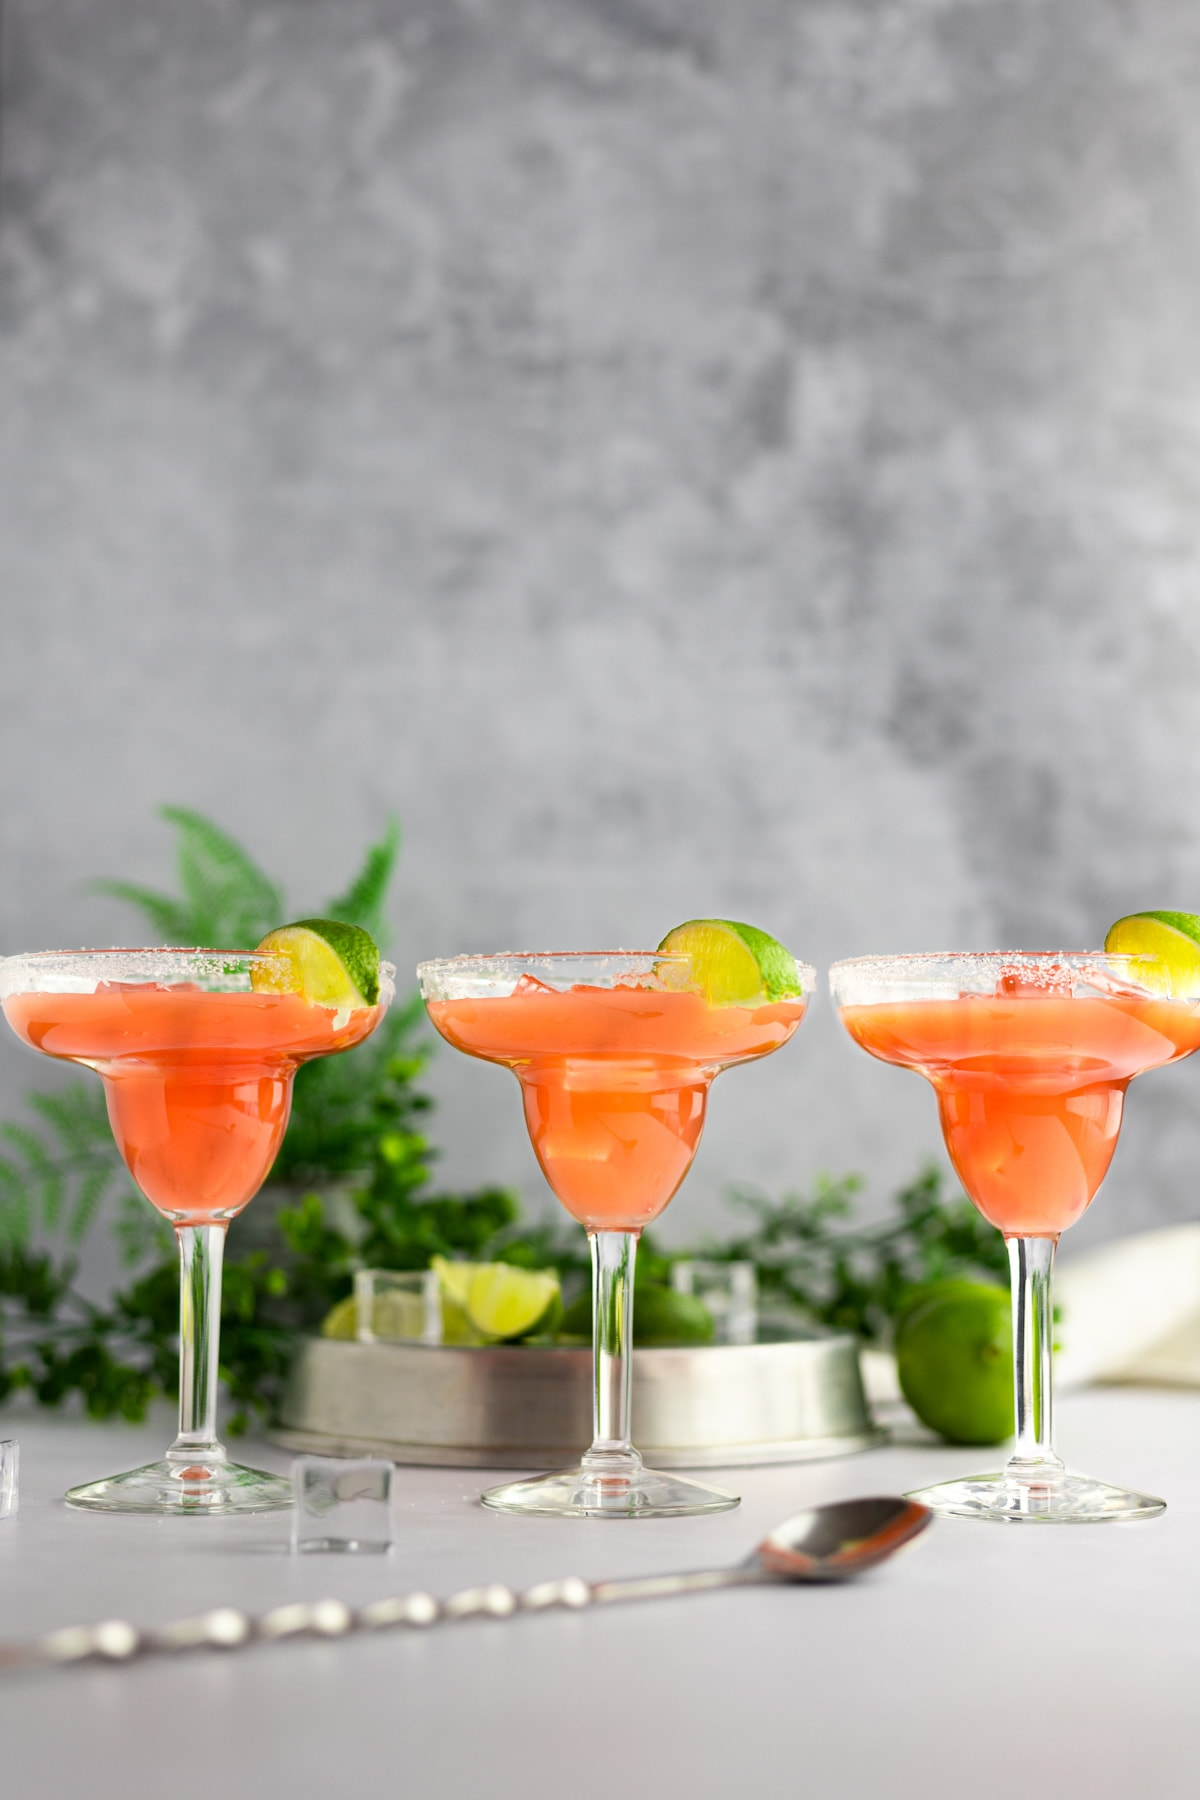 Three guava margaritas in a line, each garnished with a slice of lime, a metal spoon in the foreground and limed and green leaves in the background.